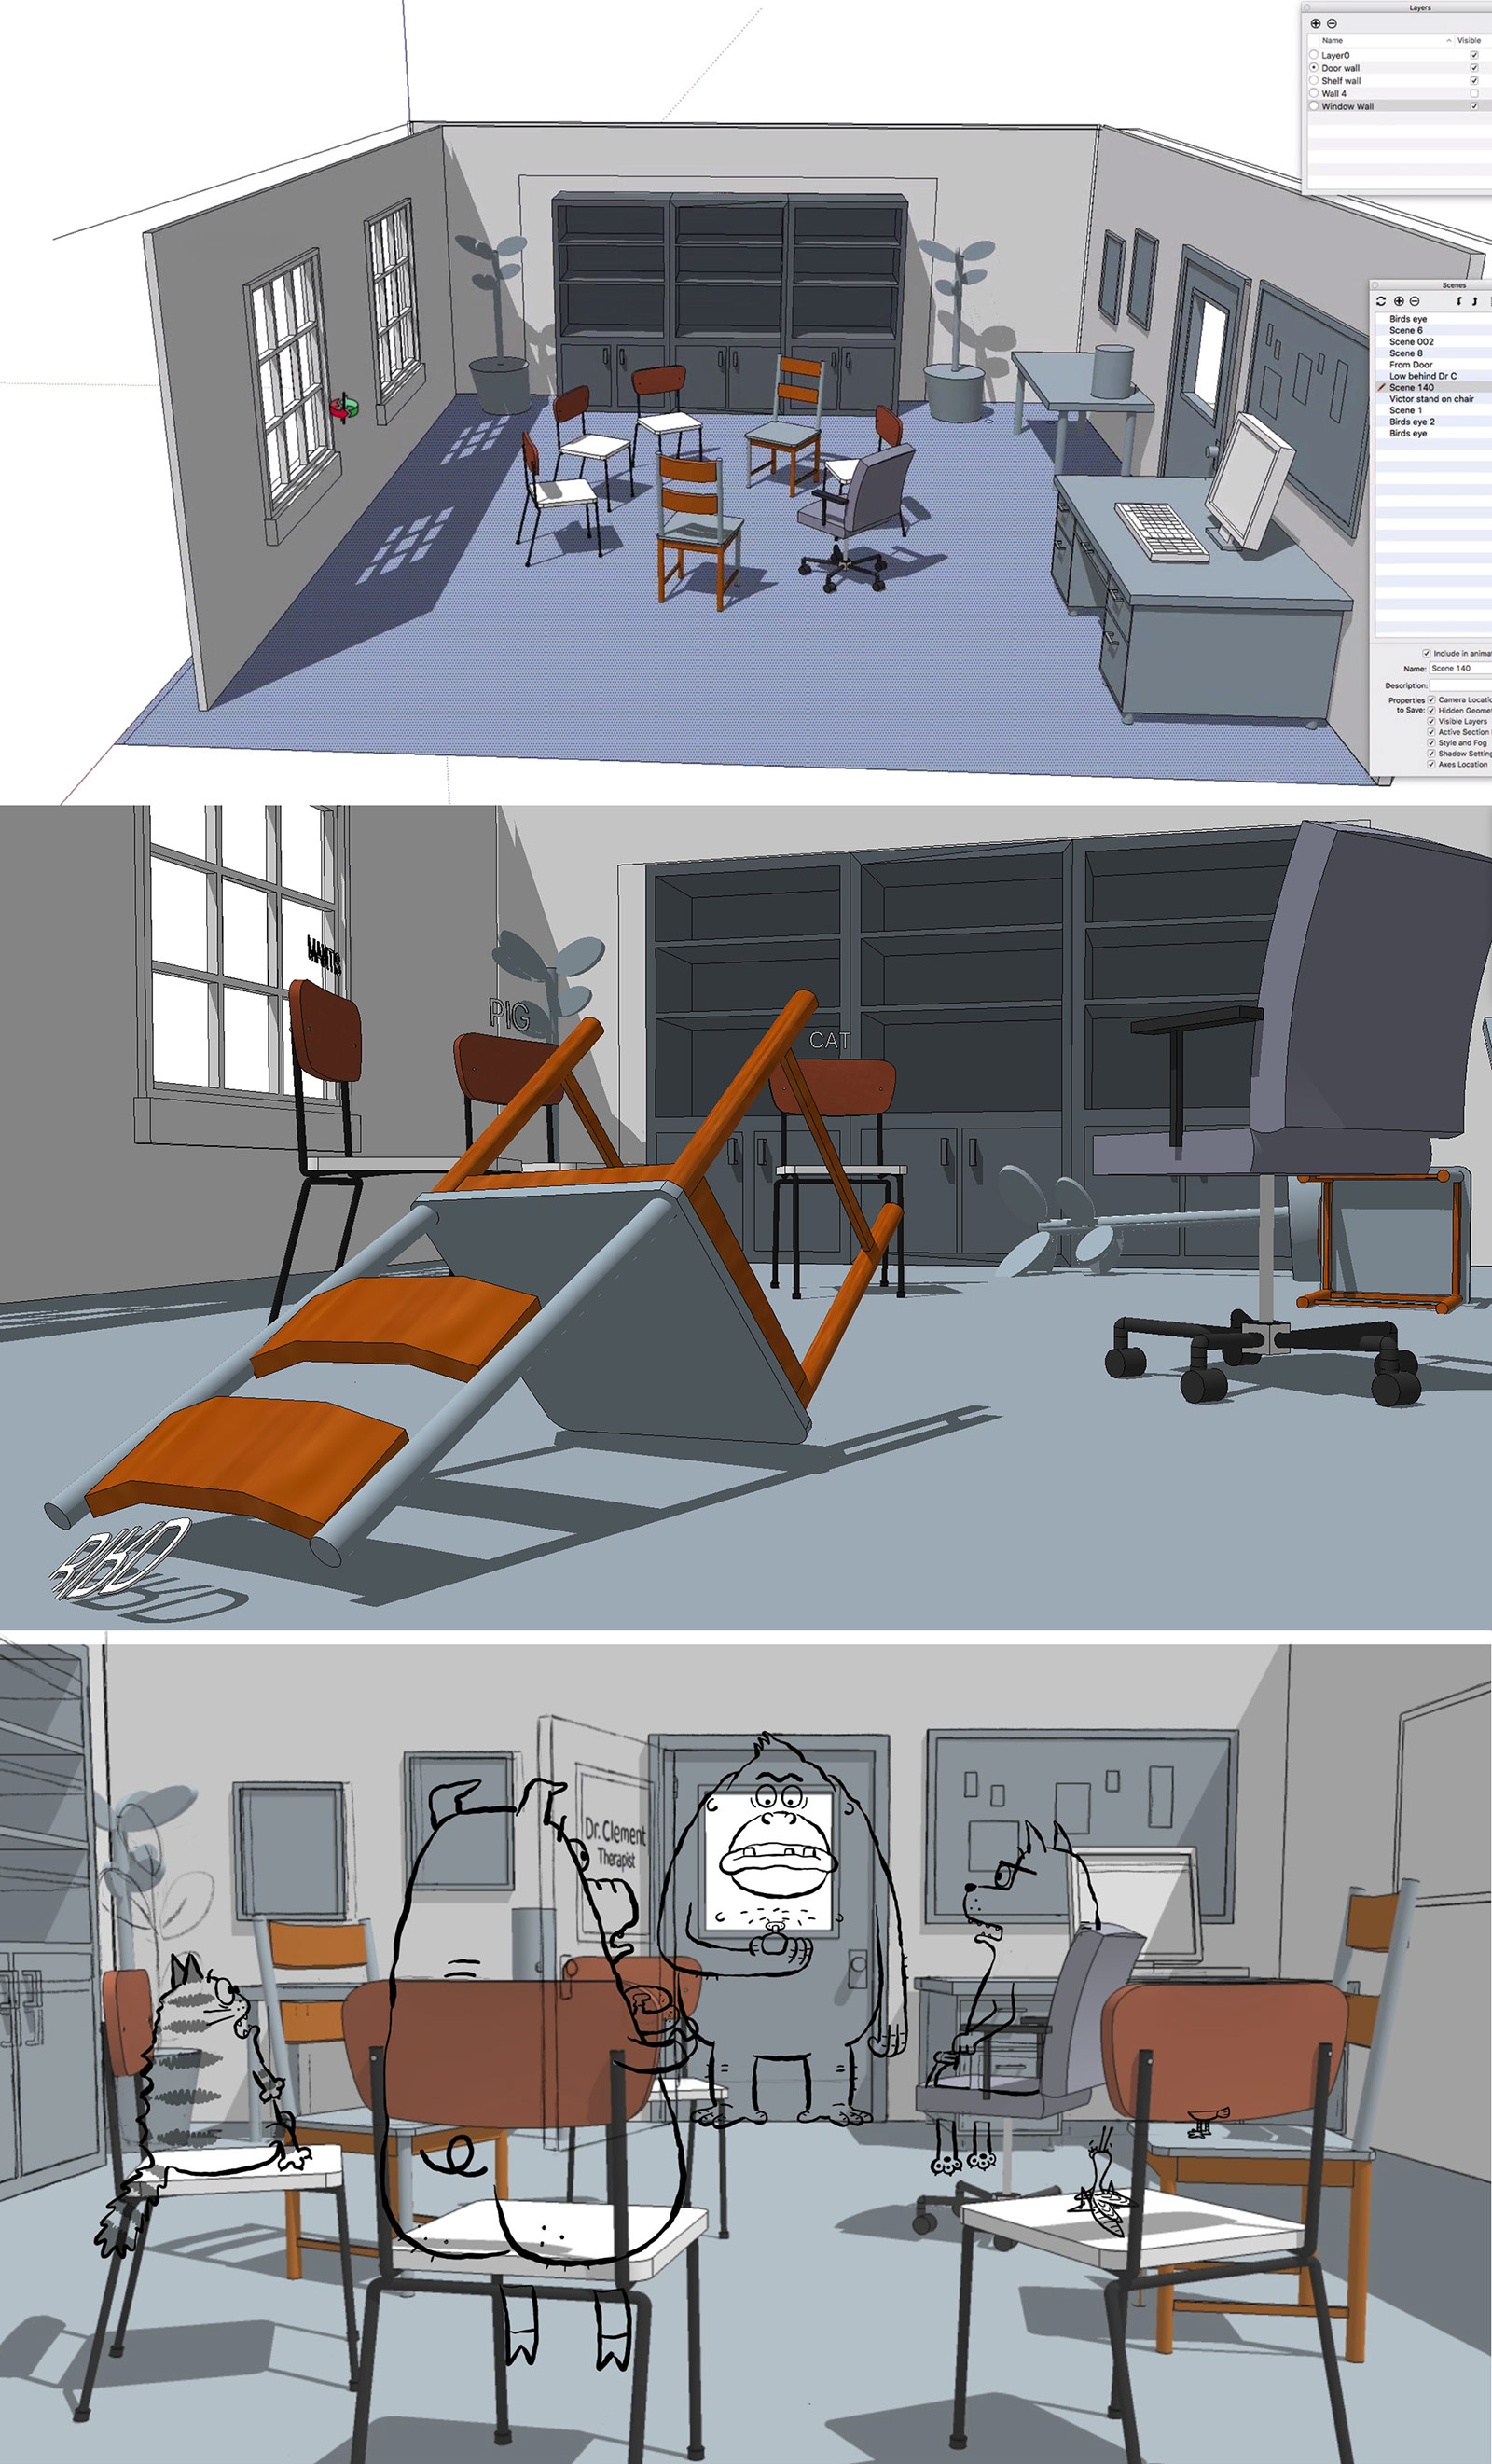 The filmmakers say it was a challenge to make an entire film that took place in one room. In order to find interesting camera angles, they built the room in 3d and used it to explore layouts. The 3d layouts were then printed out and used as the basis for the background paintings.